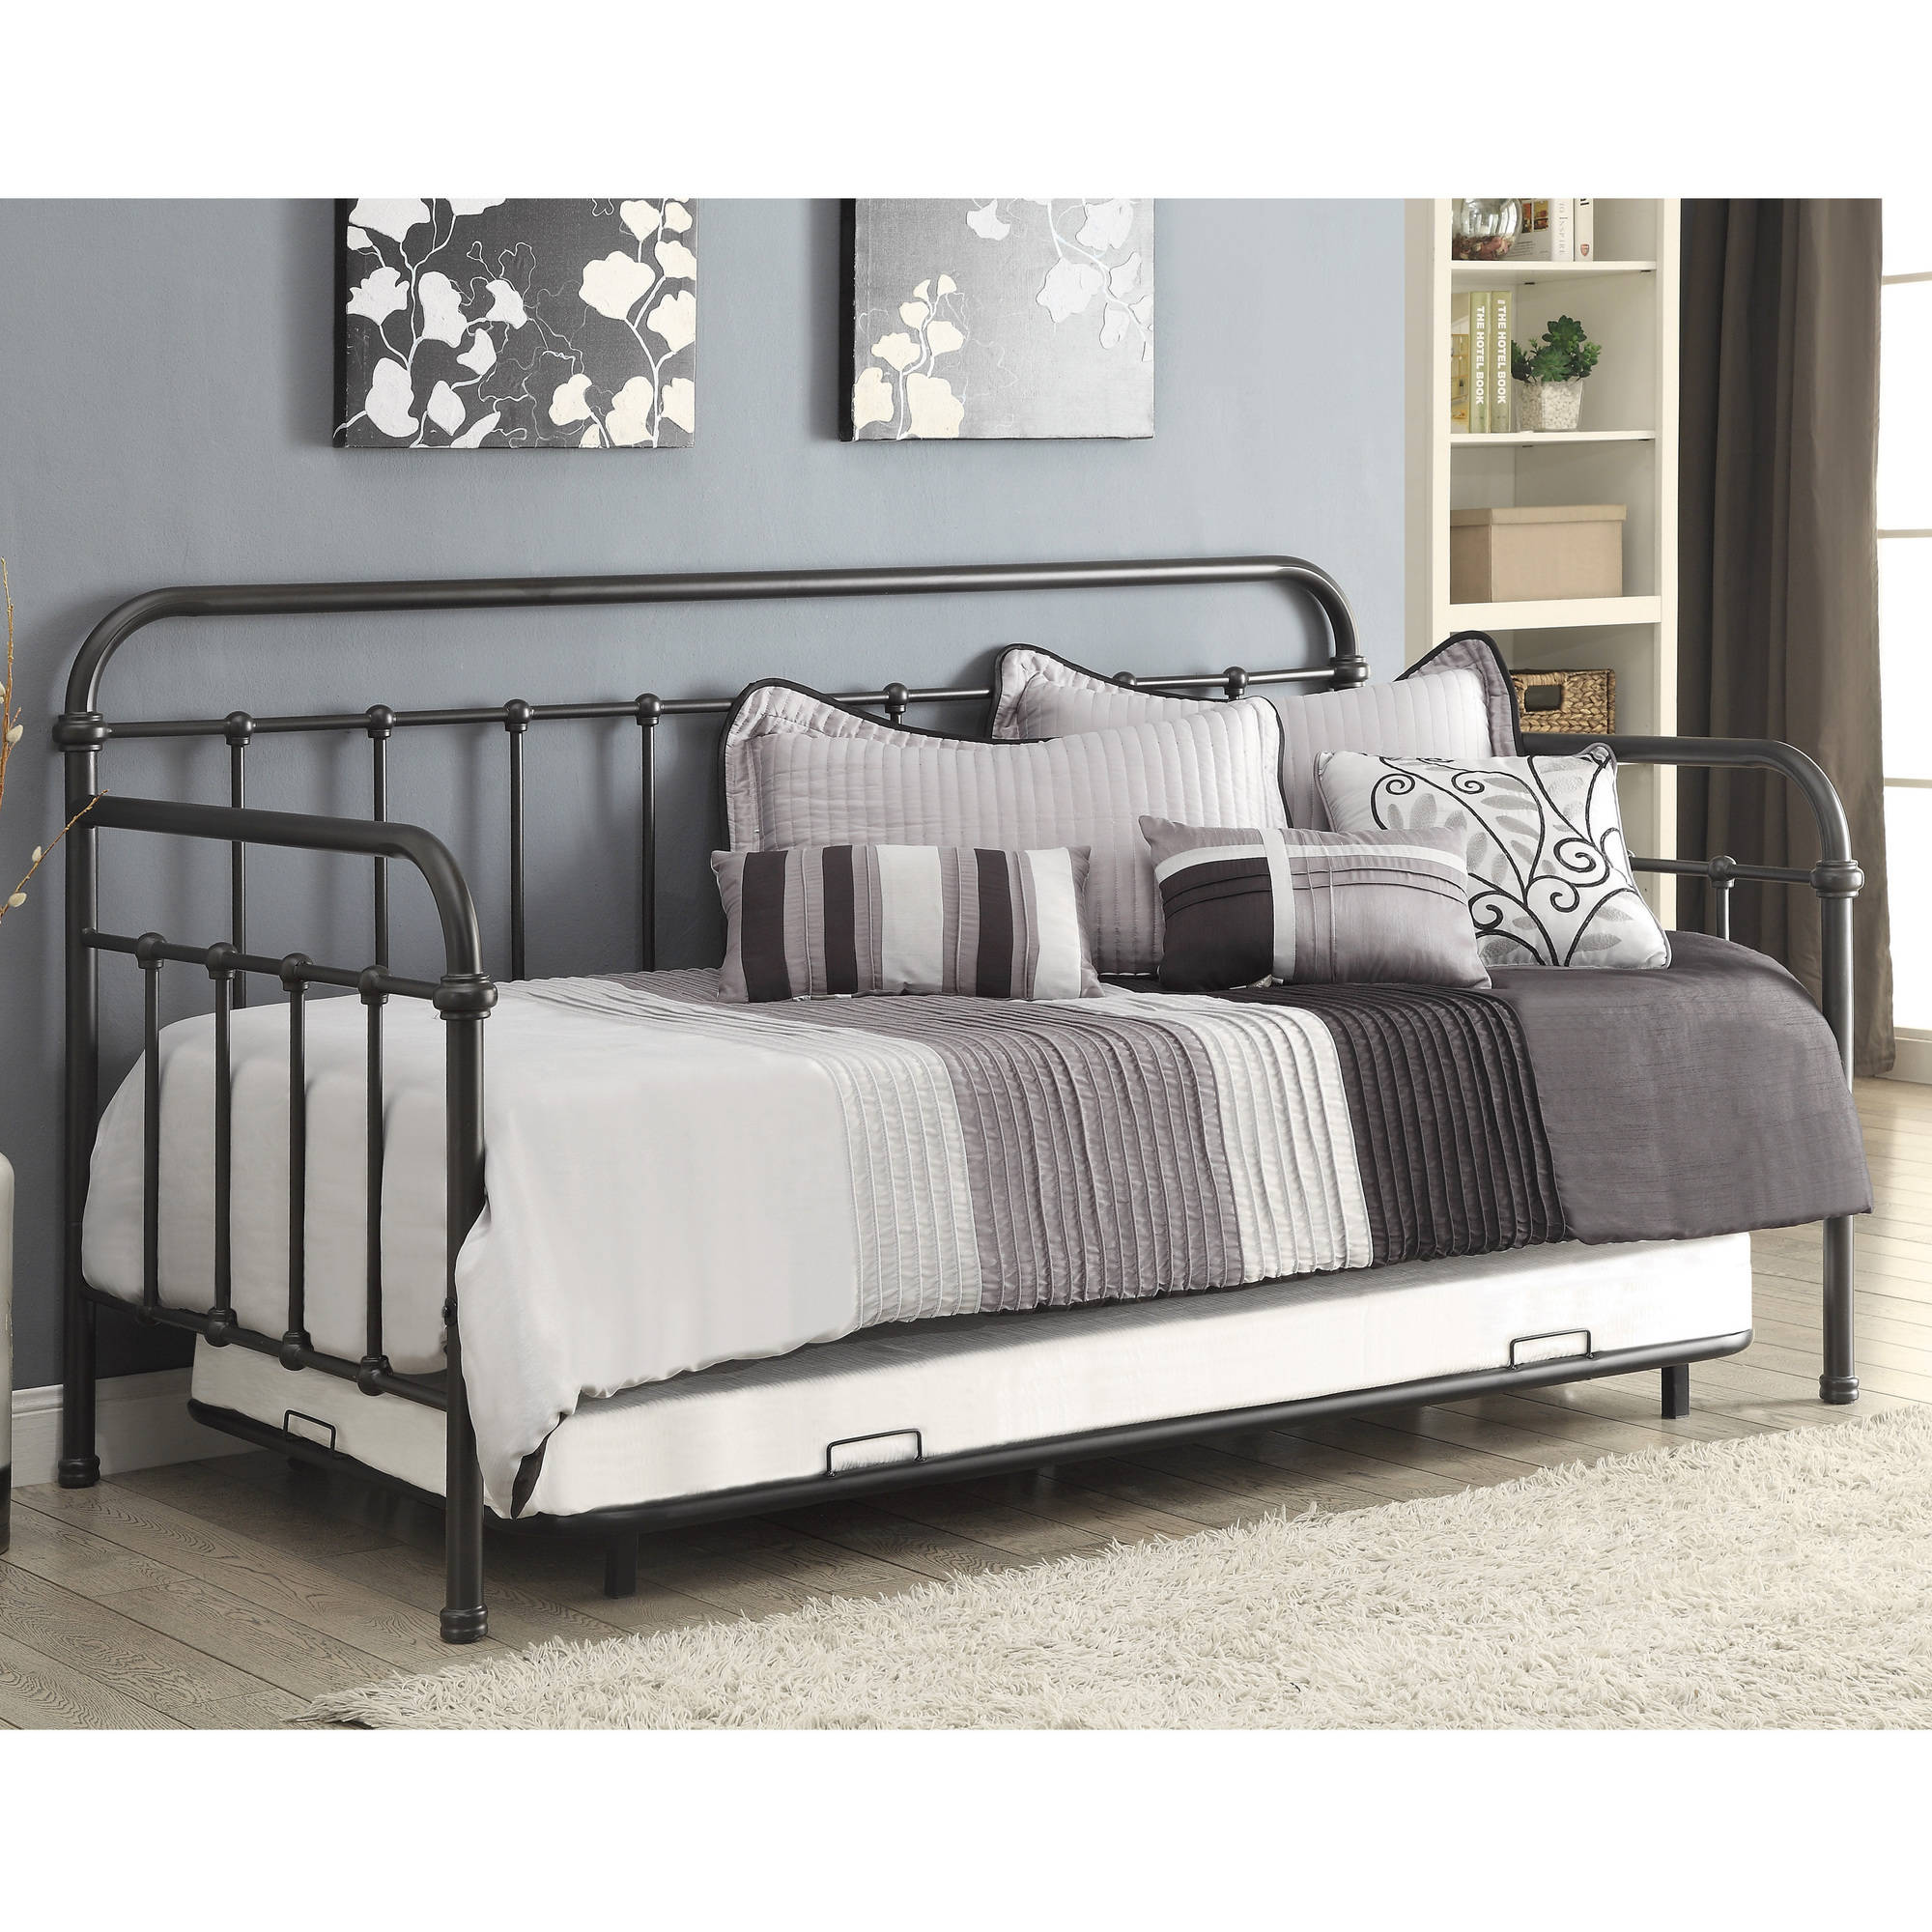 Coaster Metal Twin Day Bed and Trundle in Dark Bronze Finish by Coaster Company